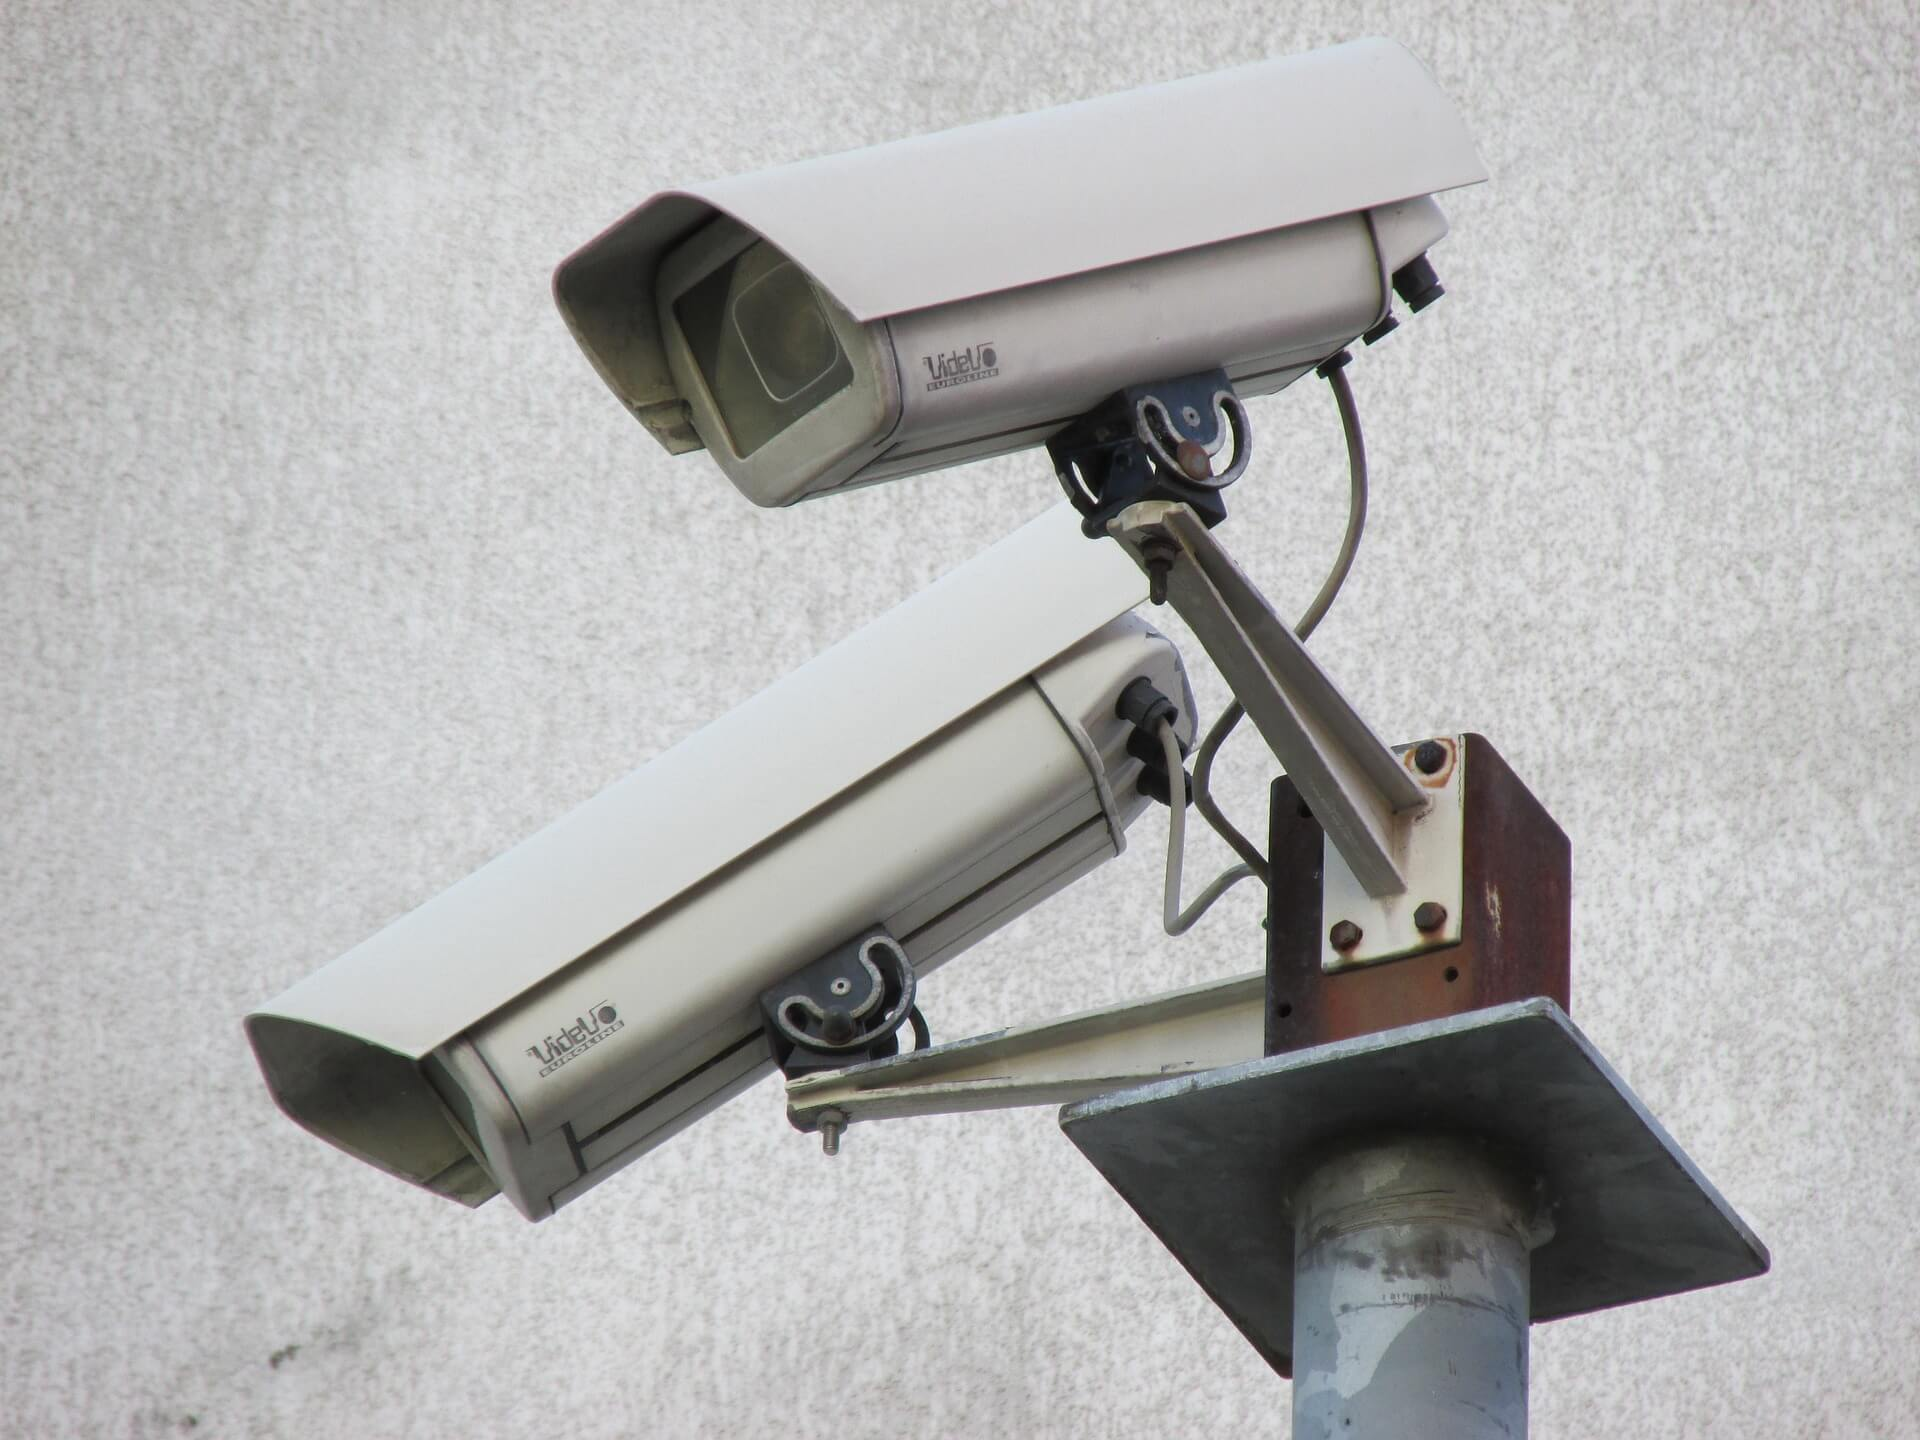 Security cameras pointing below